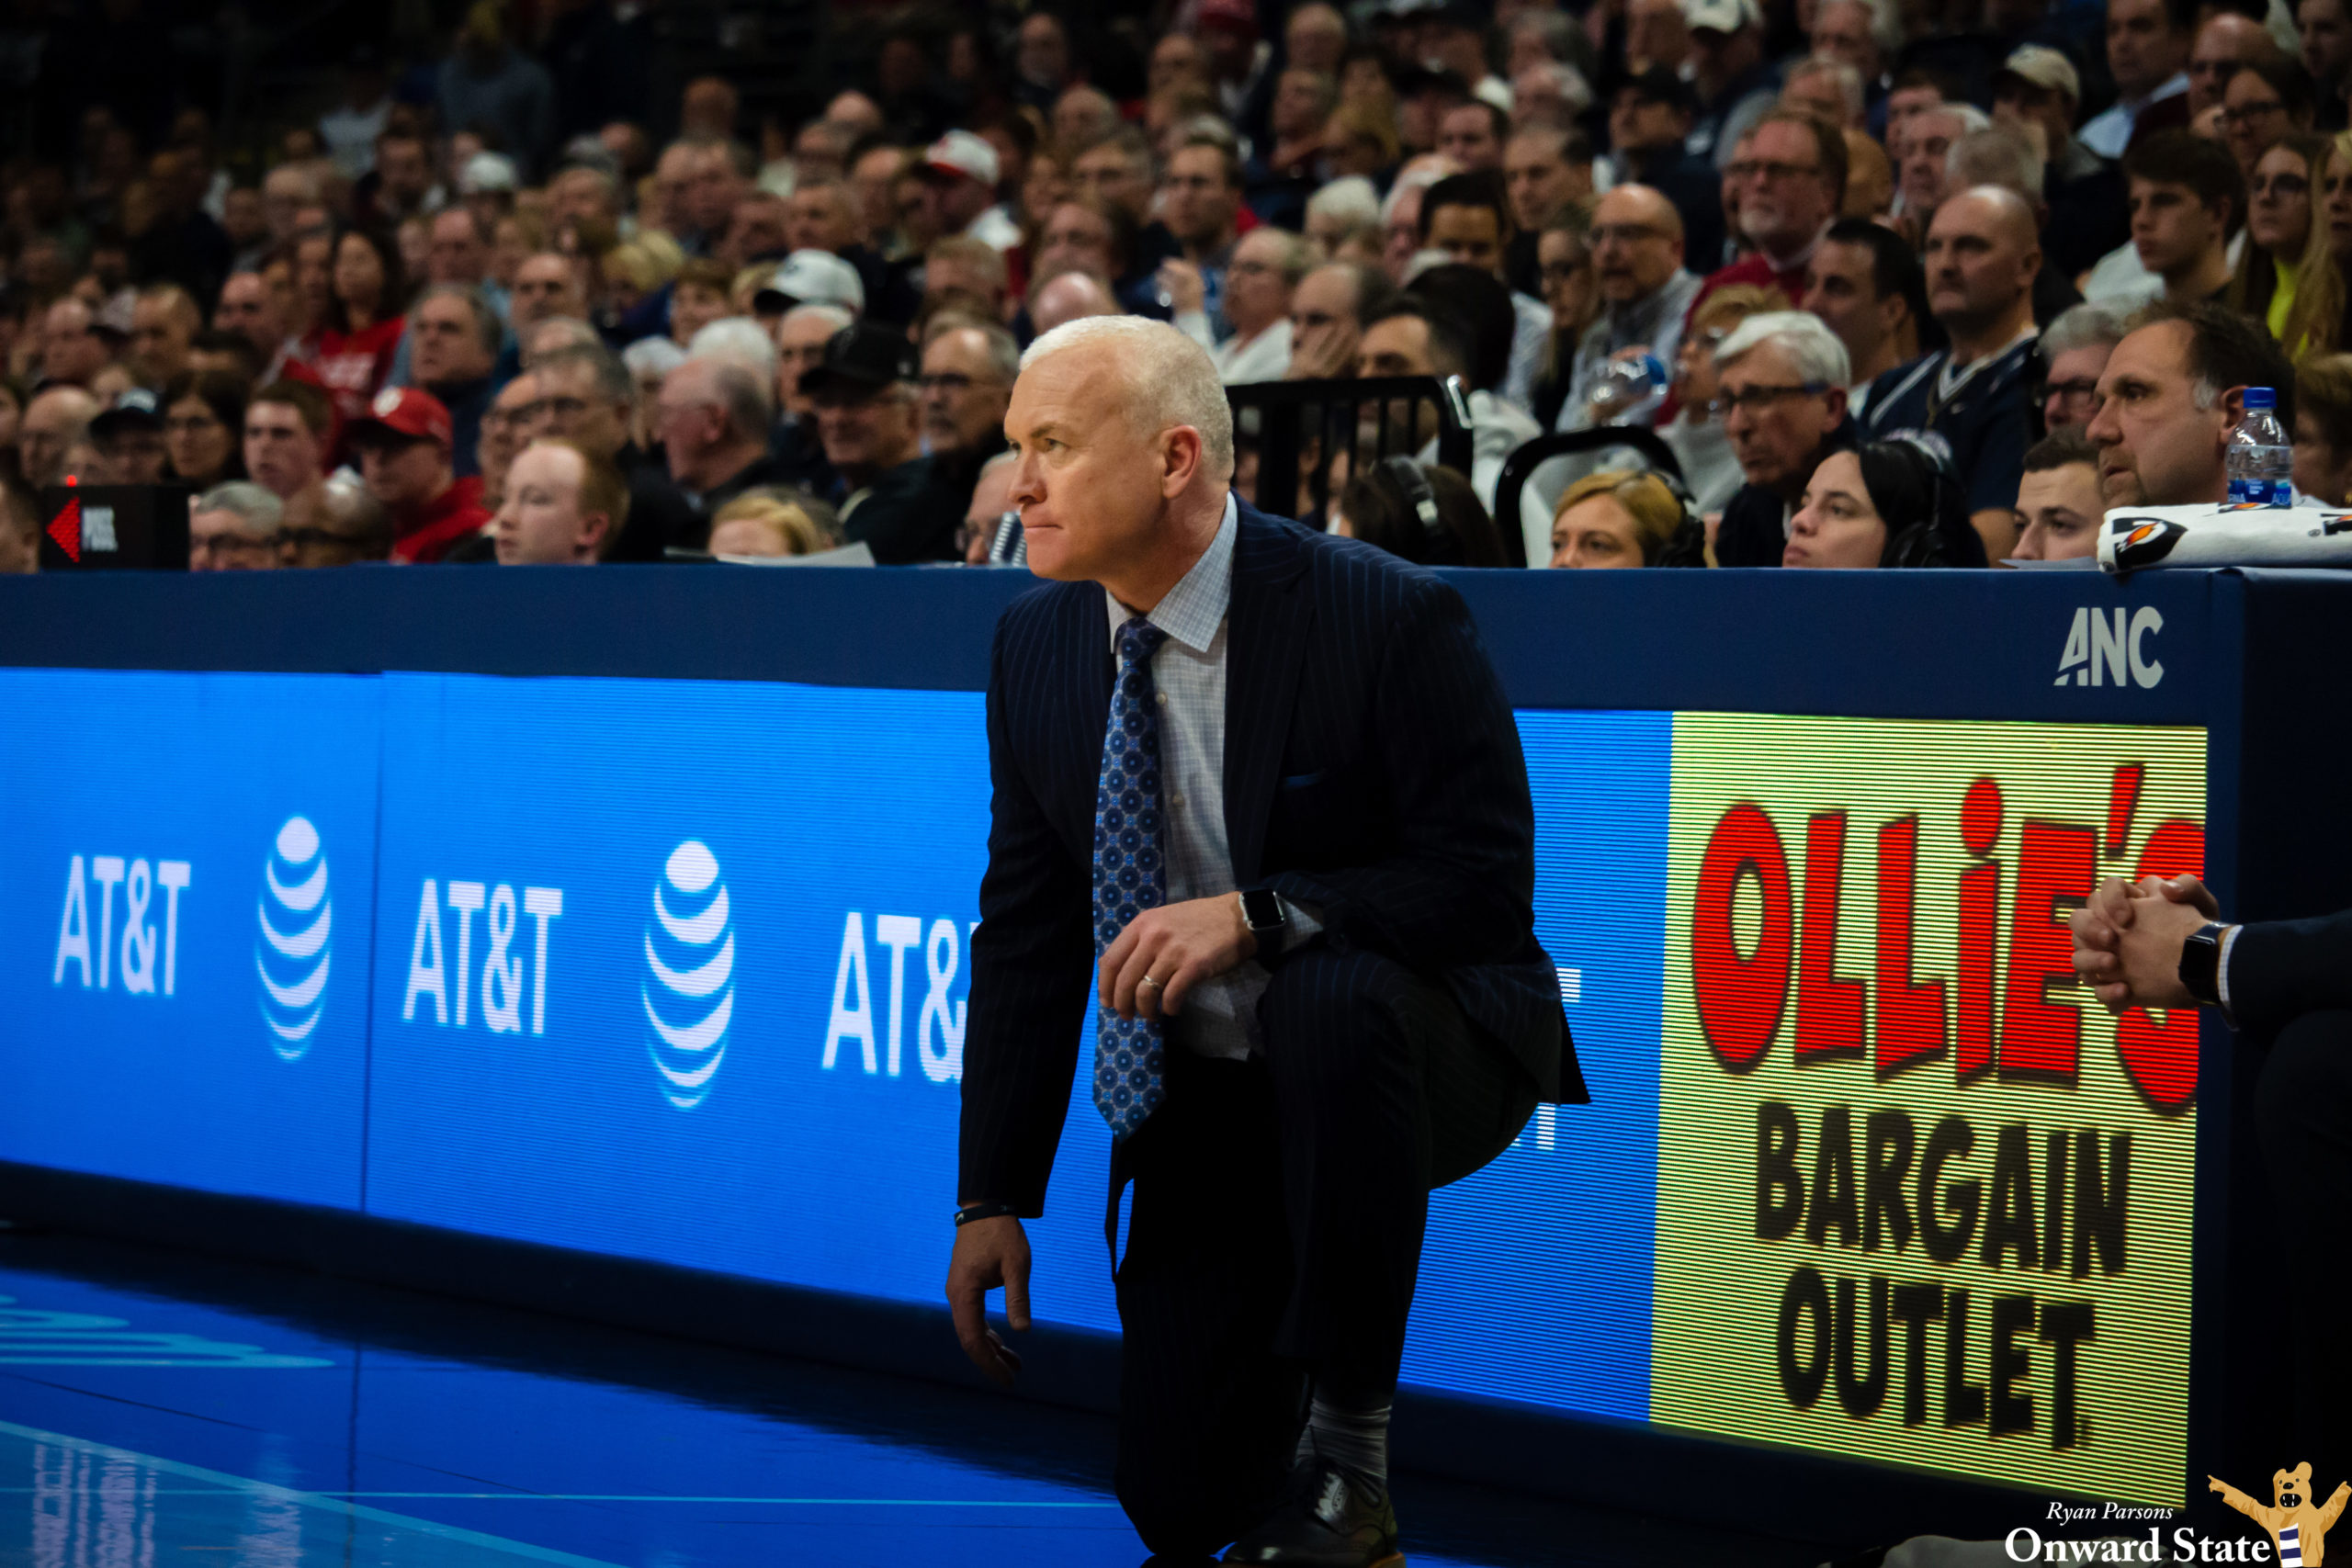 Penn State coach Pat Chambers resigns after investigation